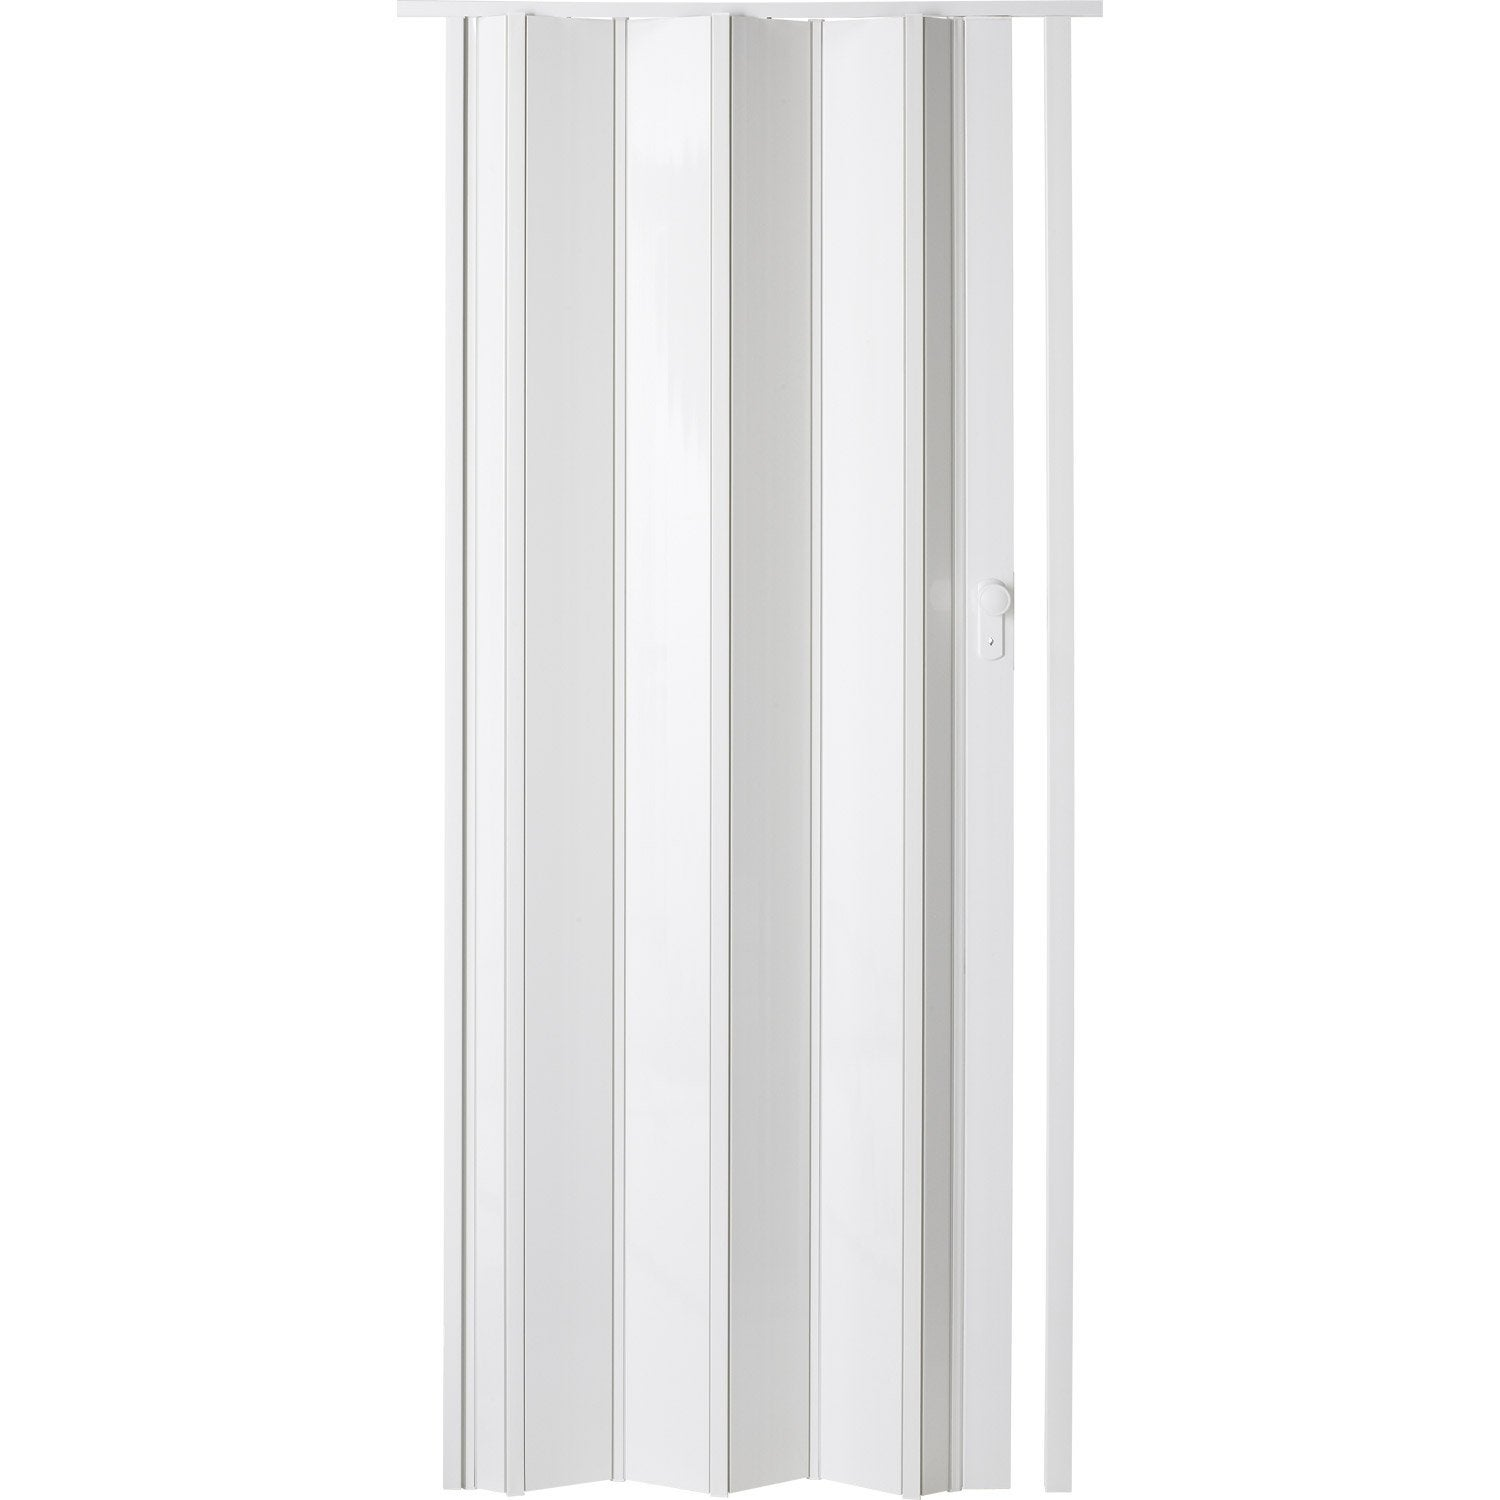 Porte extensible ibiza blanc brillant 205 x 85 cm pais d 39 une lame 10 - Porte accordeon ikea ...